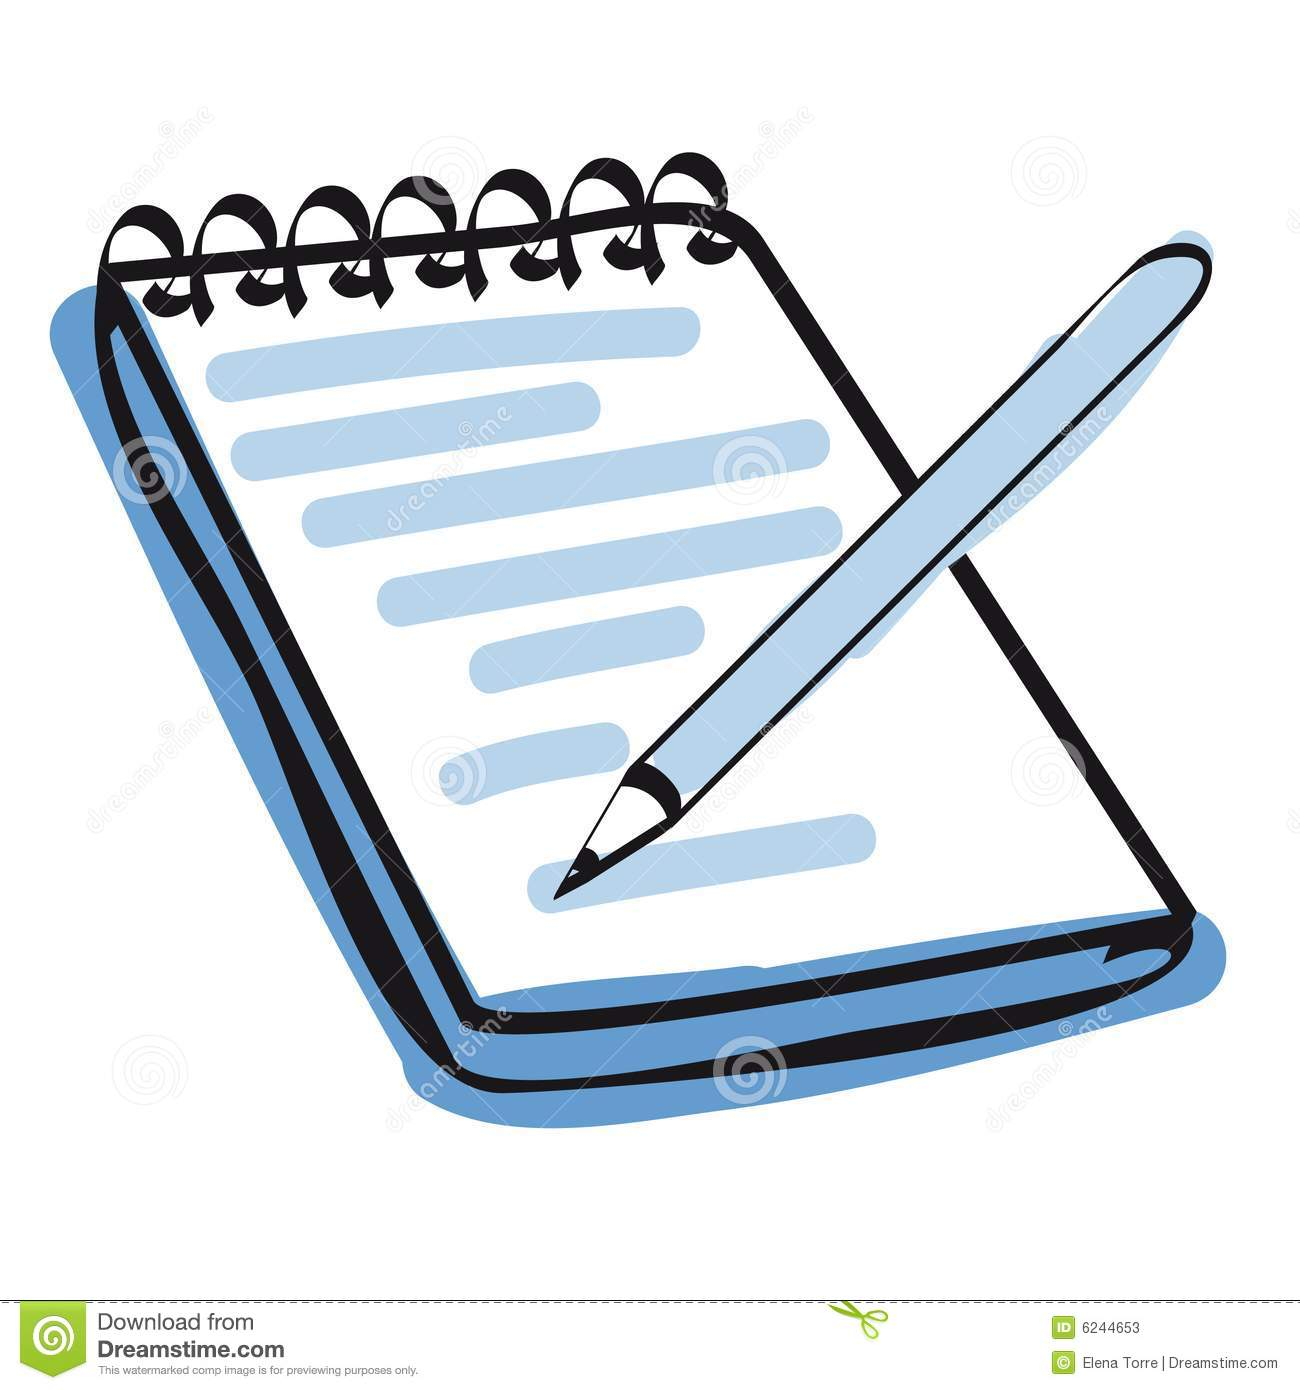 Note Pad And Pencil Icon Vector Stock Photos Image 6244653